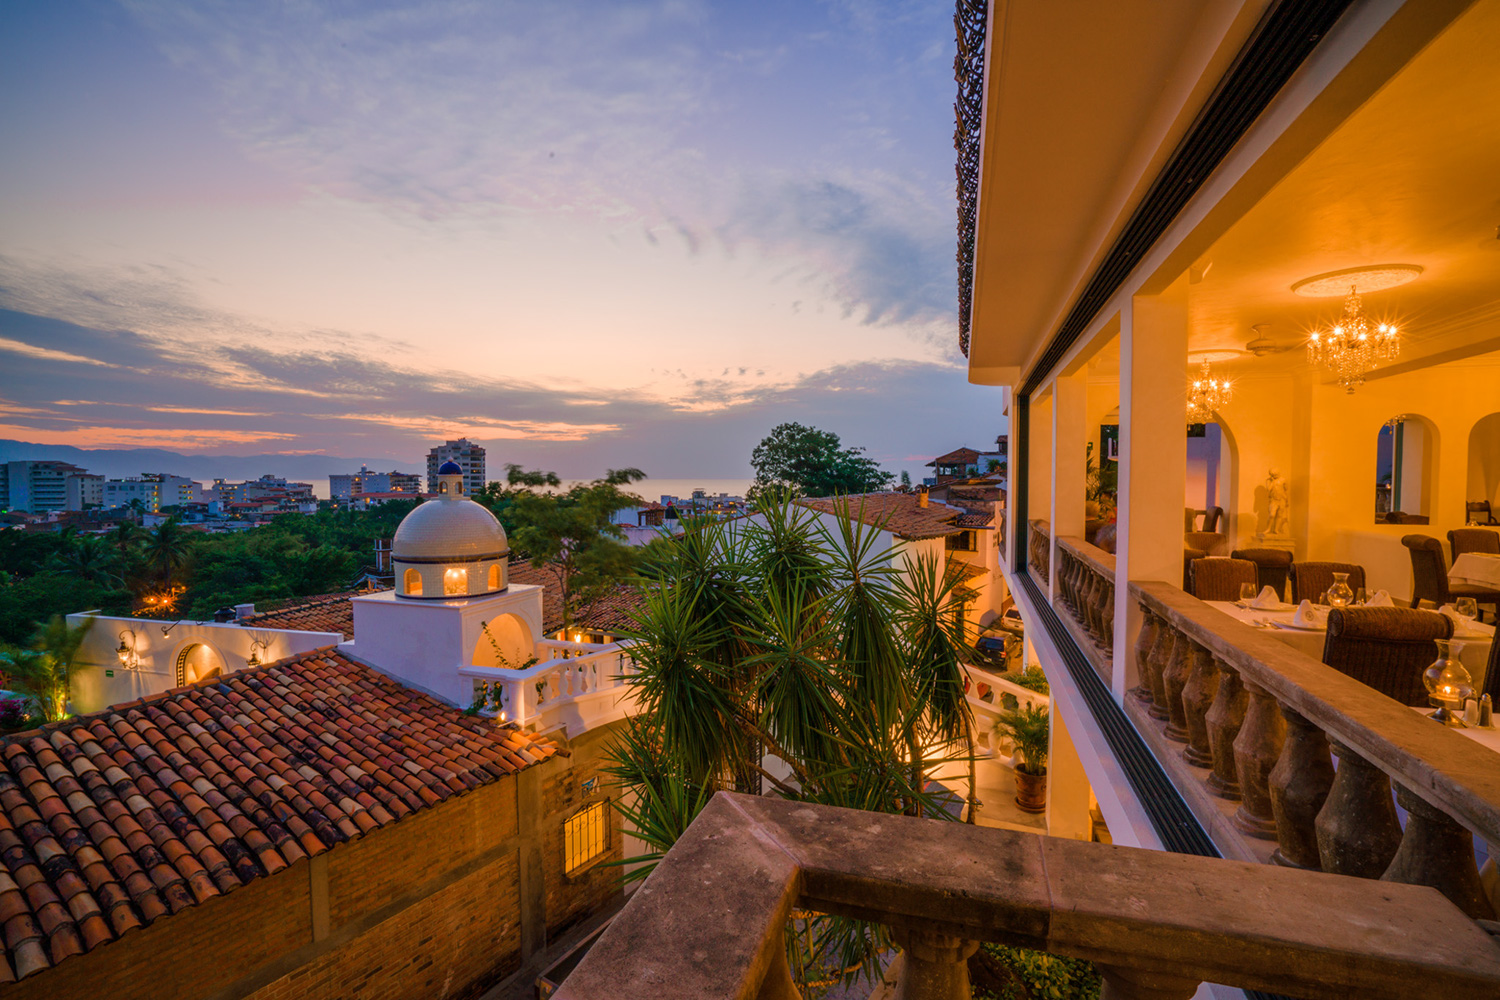 Casa Kimberly : Former home of Elizabeth Taylor and Richard Burton in Puerto Vallarta, Mexico